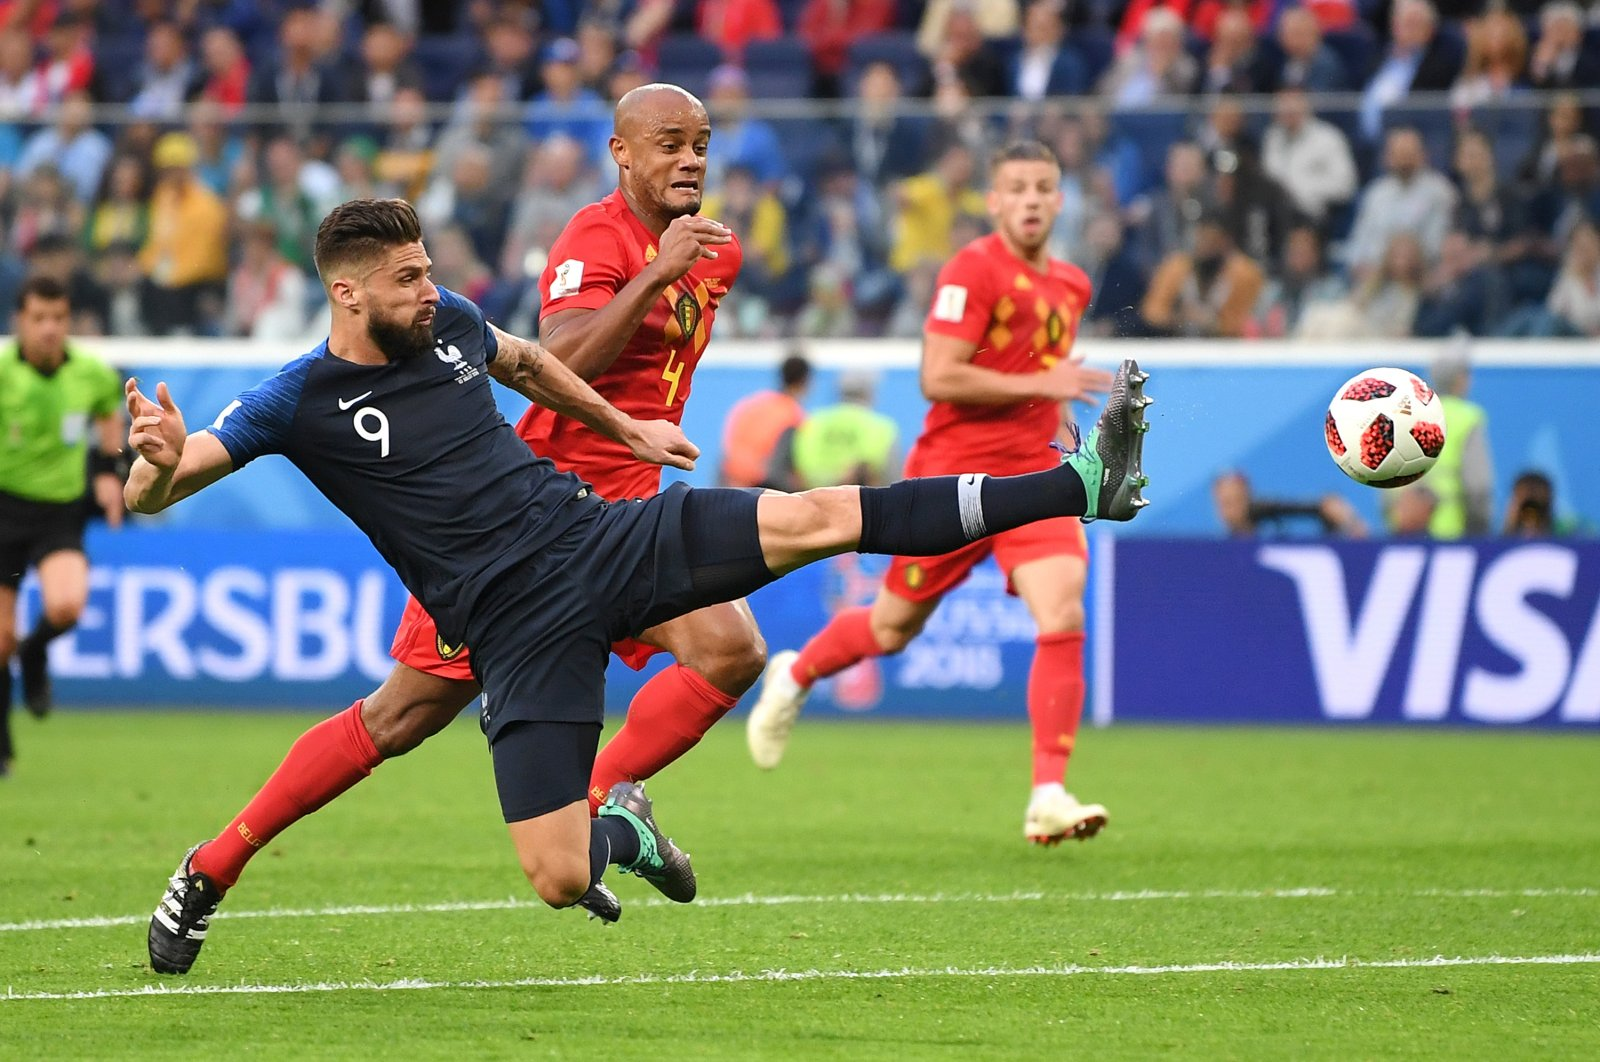 France's Olivier Giroud (front) in action during a Fifa World Cup in St. Petersburg, Russia, July 10, 2018. (Getty Images)